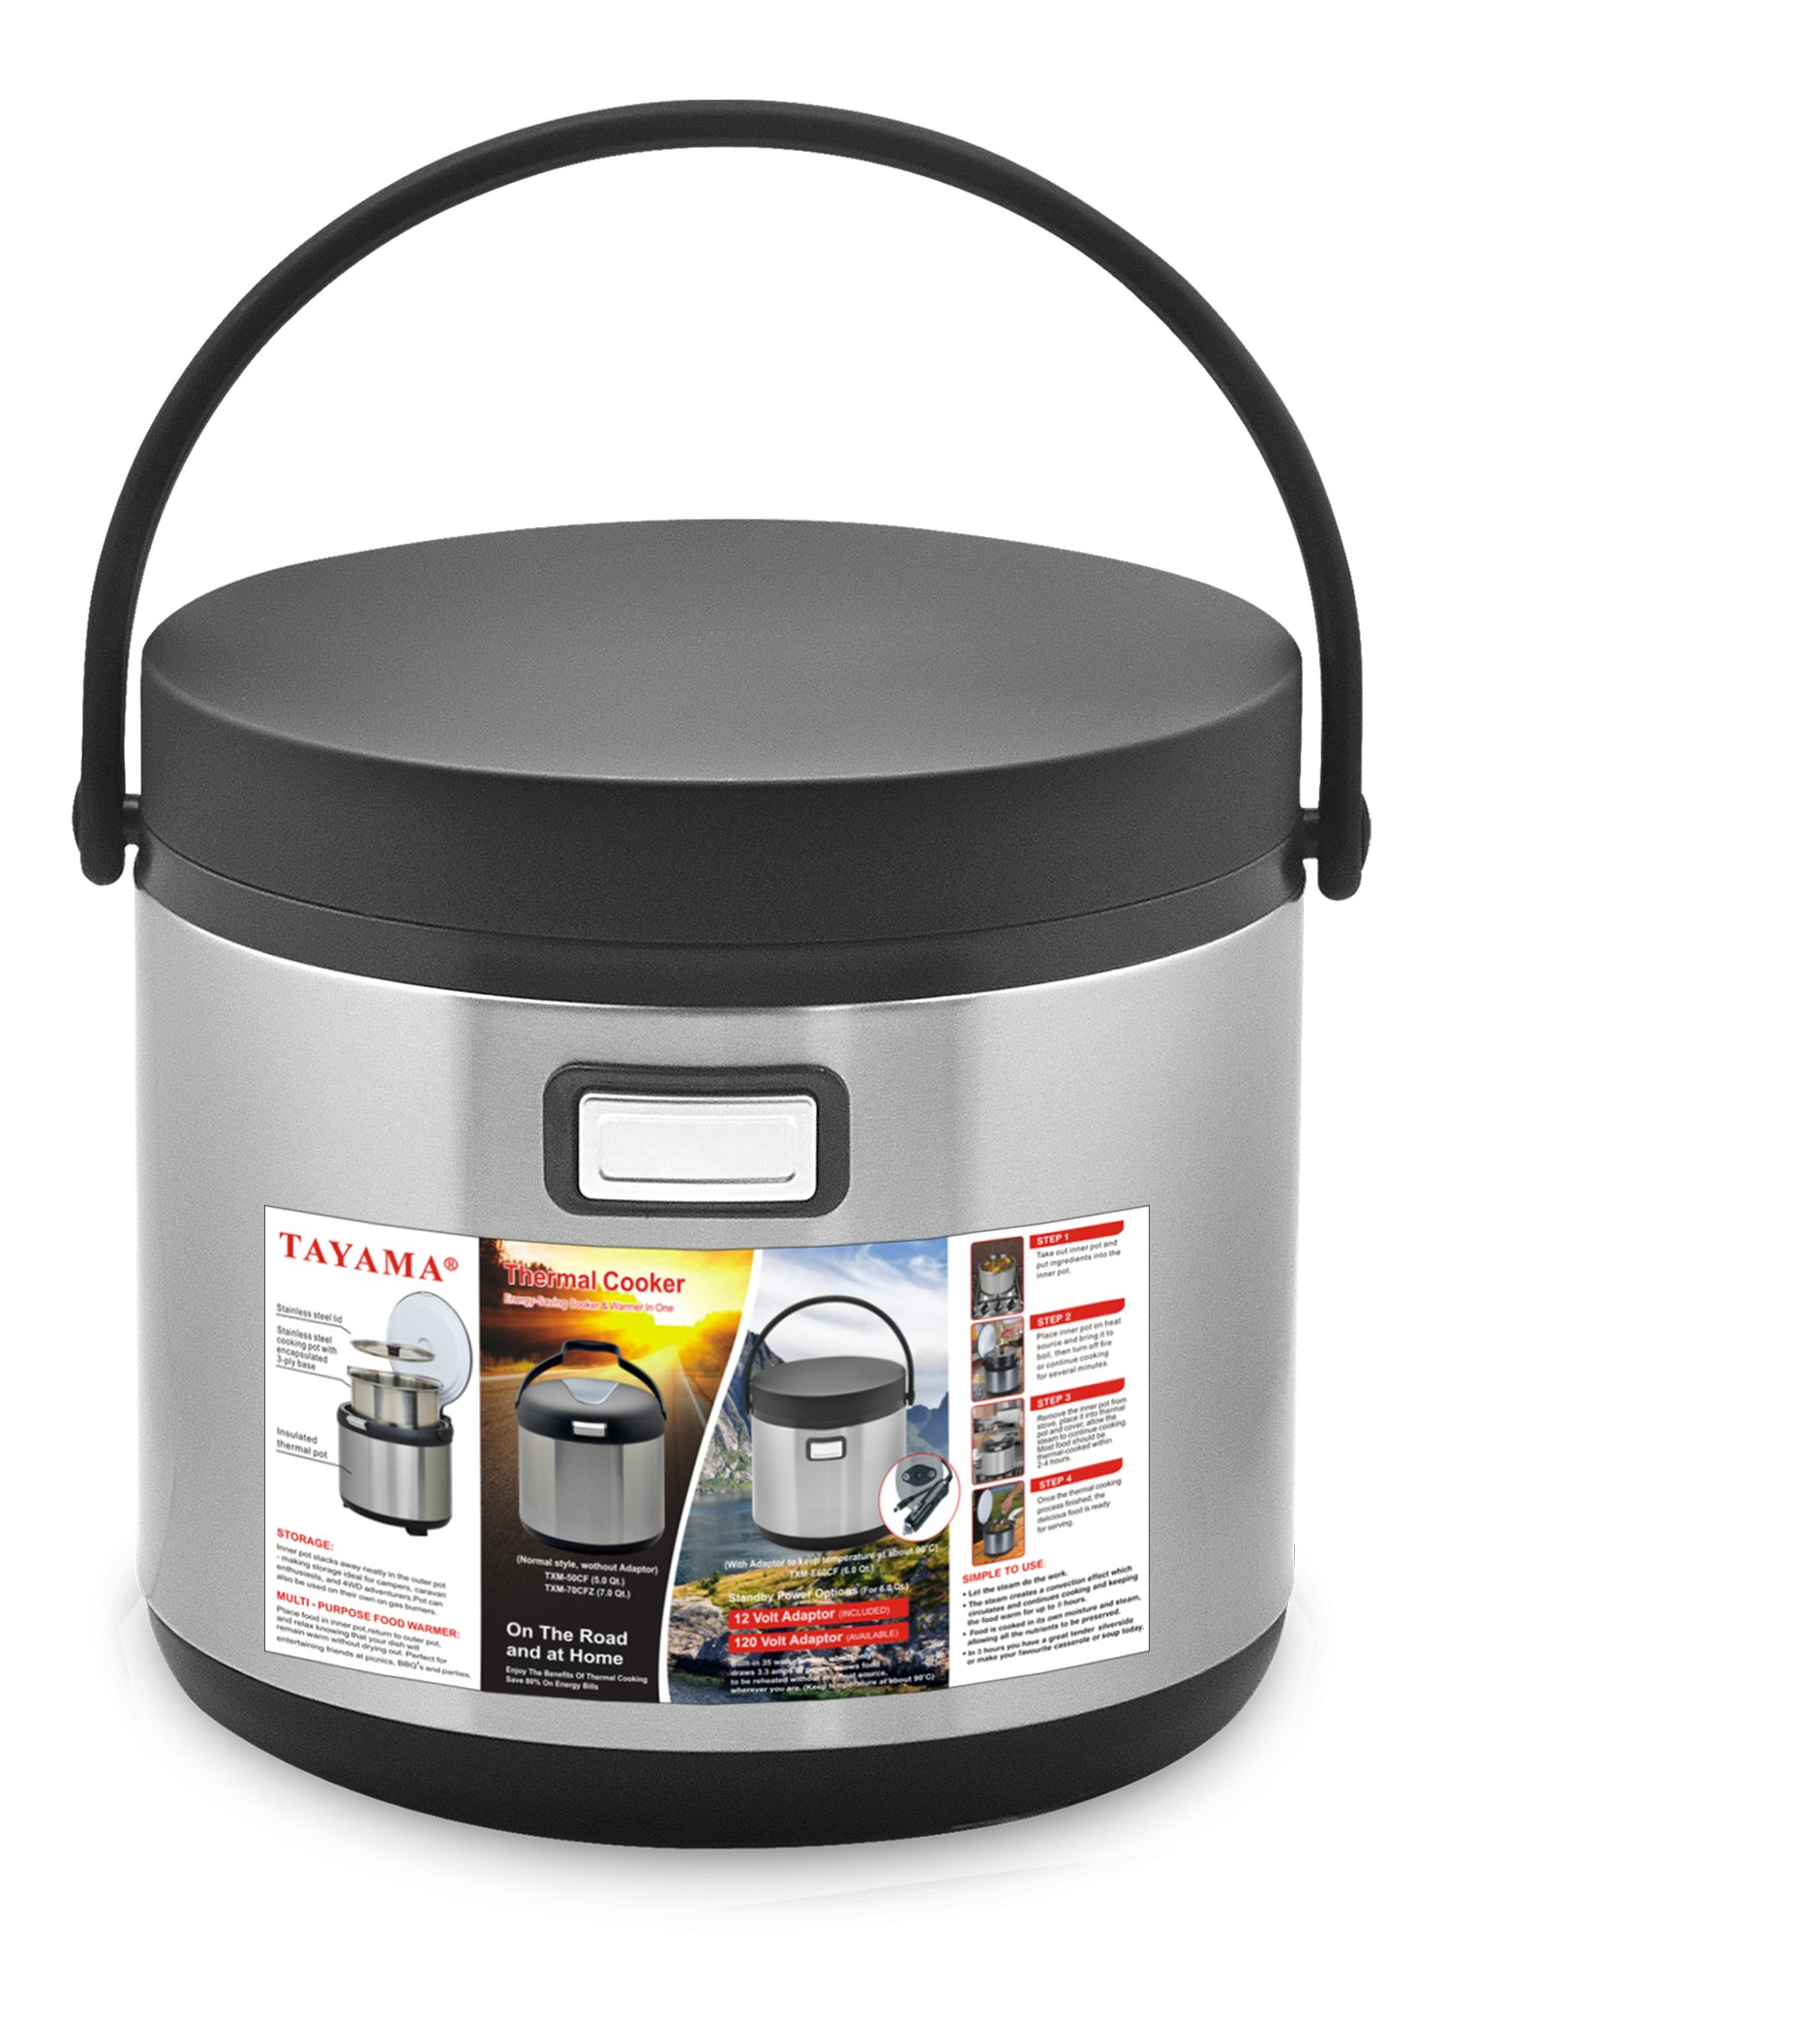 Tayama TXM-E60CF Thermal Cooker and Food Warmer in One, 6 Qt, Black